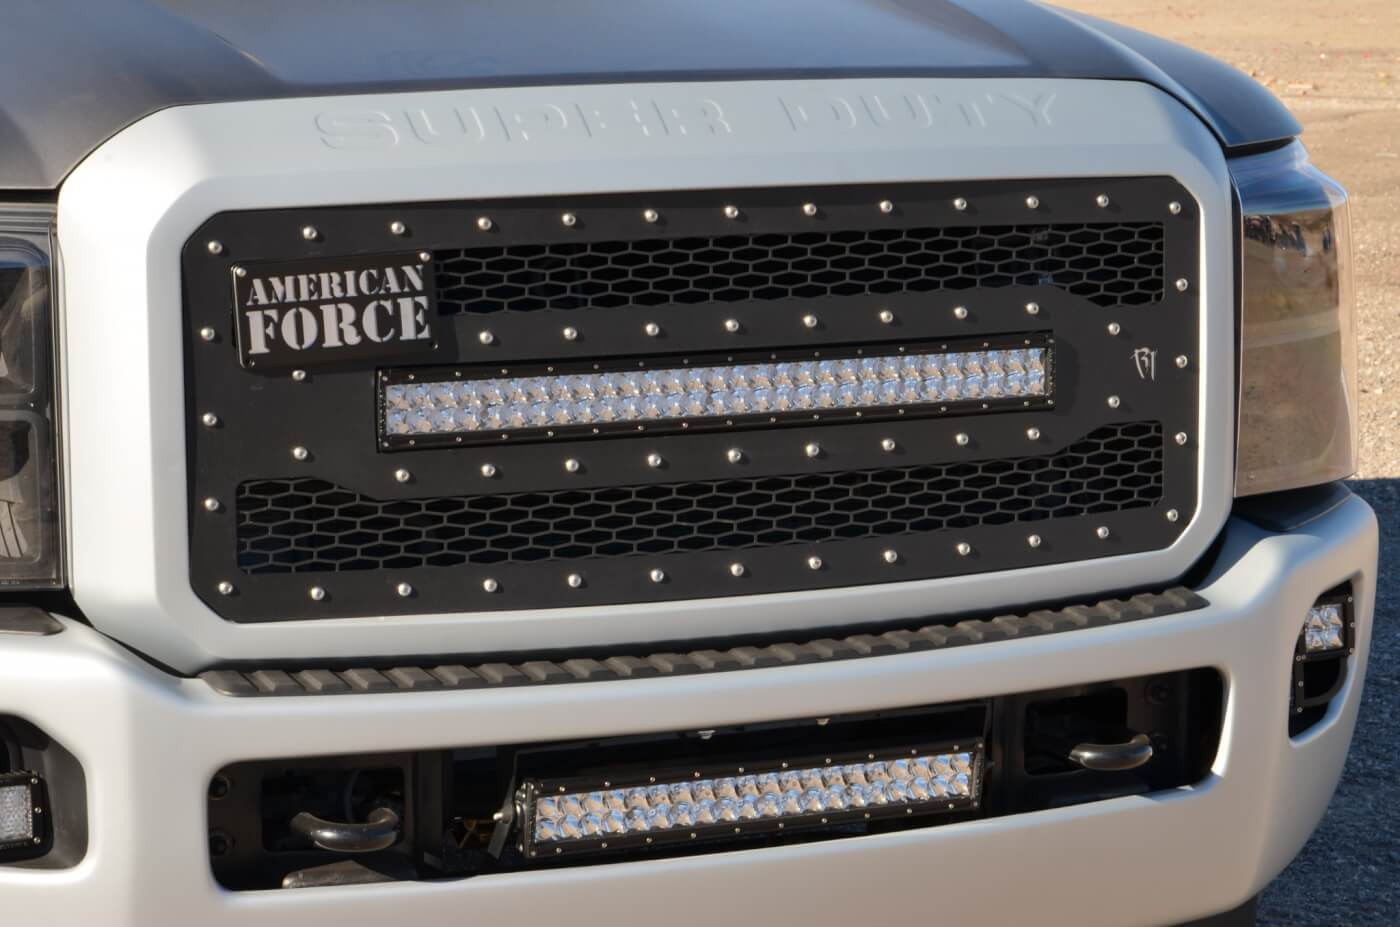 It's all Rigid up front, starting with their 40566 grille insert and a pair of E Series LED light bars, also from Rigid.